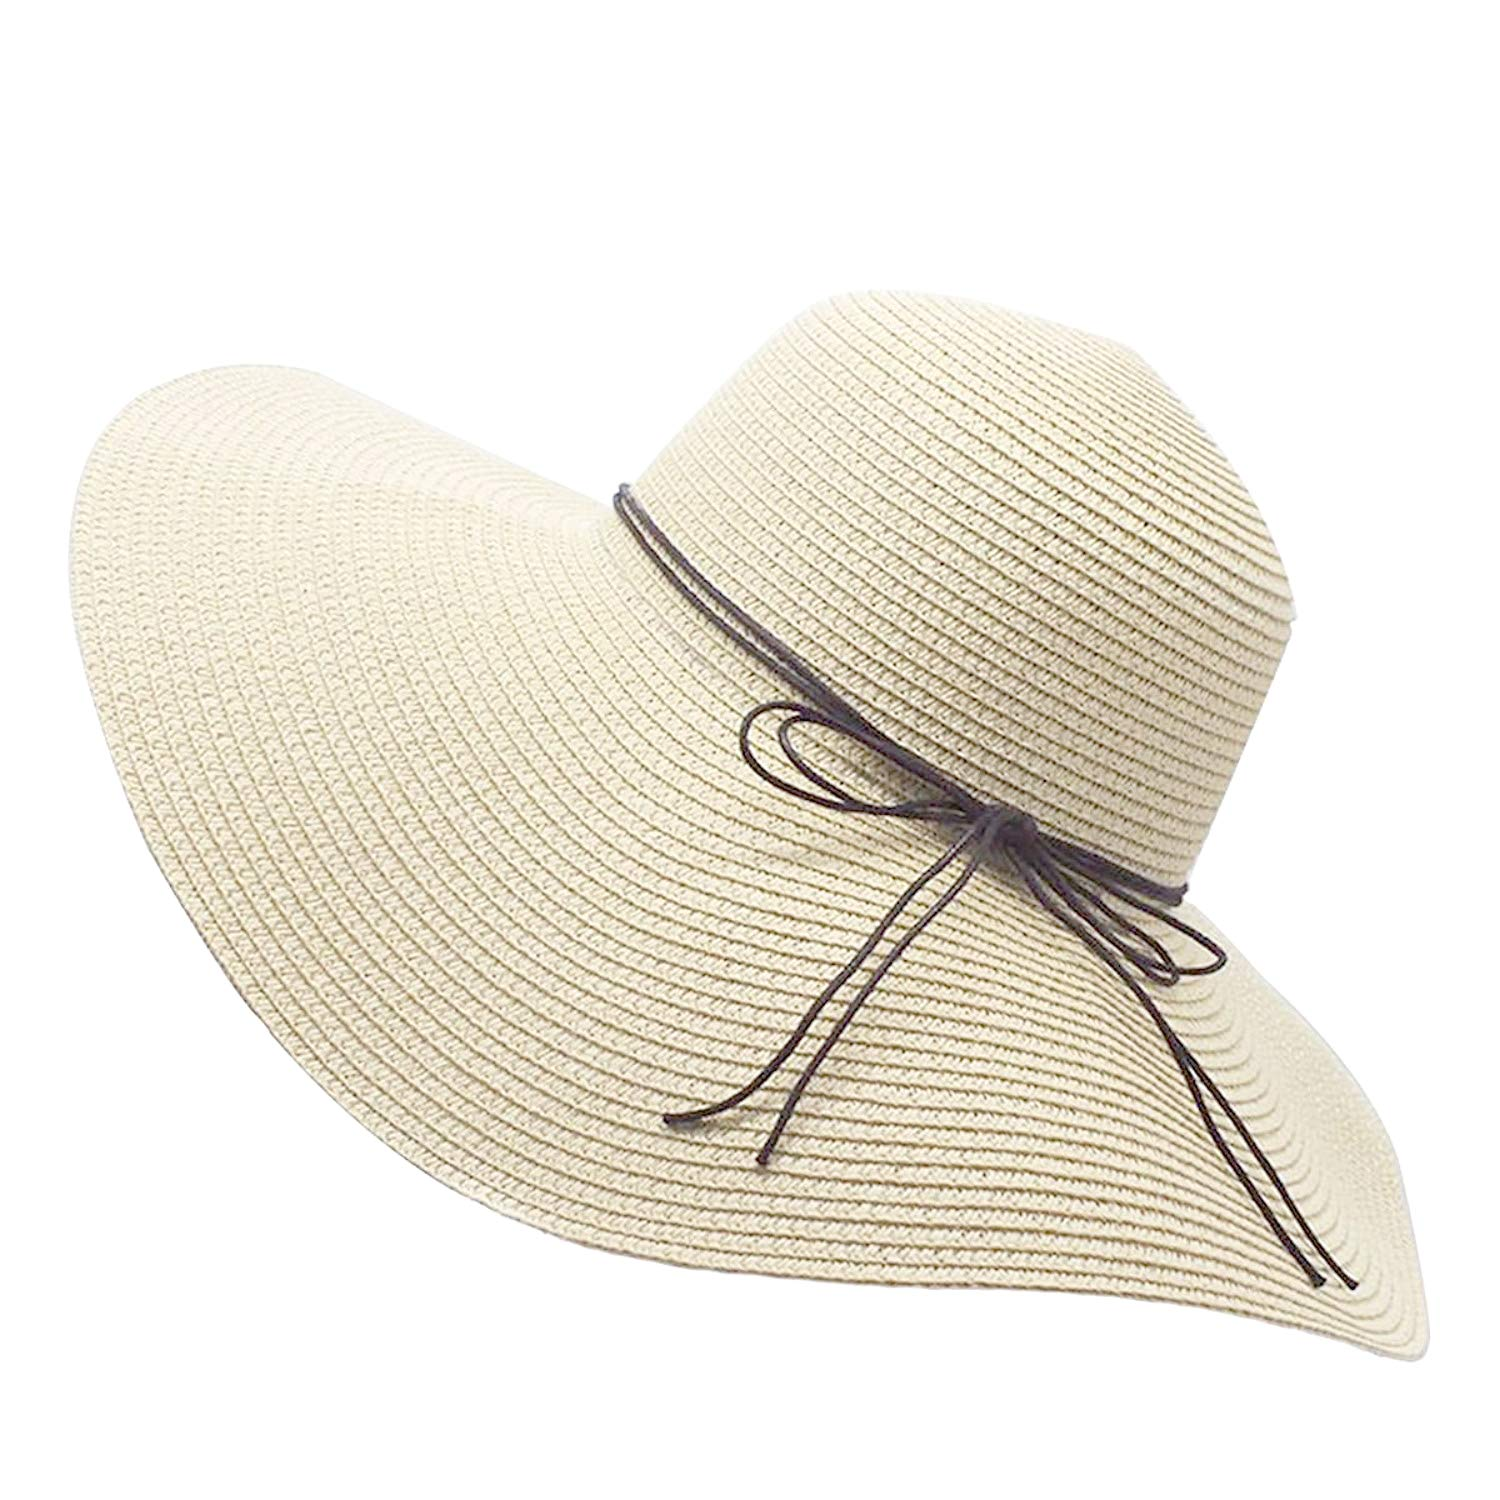 806ad42446a9a YUUVE Ladies Summer Straw Hat Foldable Beach Cap Wide Brim Large Fedora Floppy  Sun Hat for Women(Free Ribbon Gift): Amazon.co.uk: Clothing